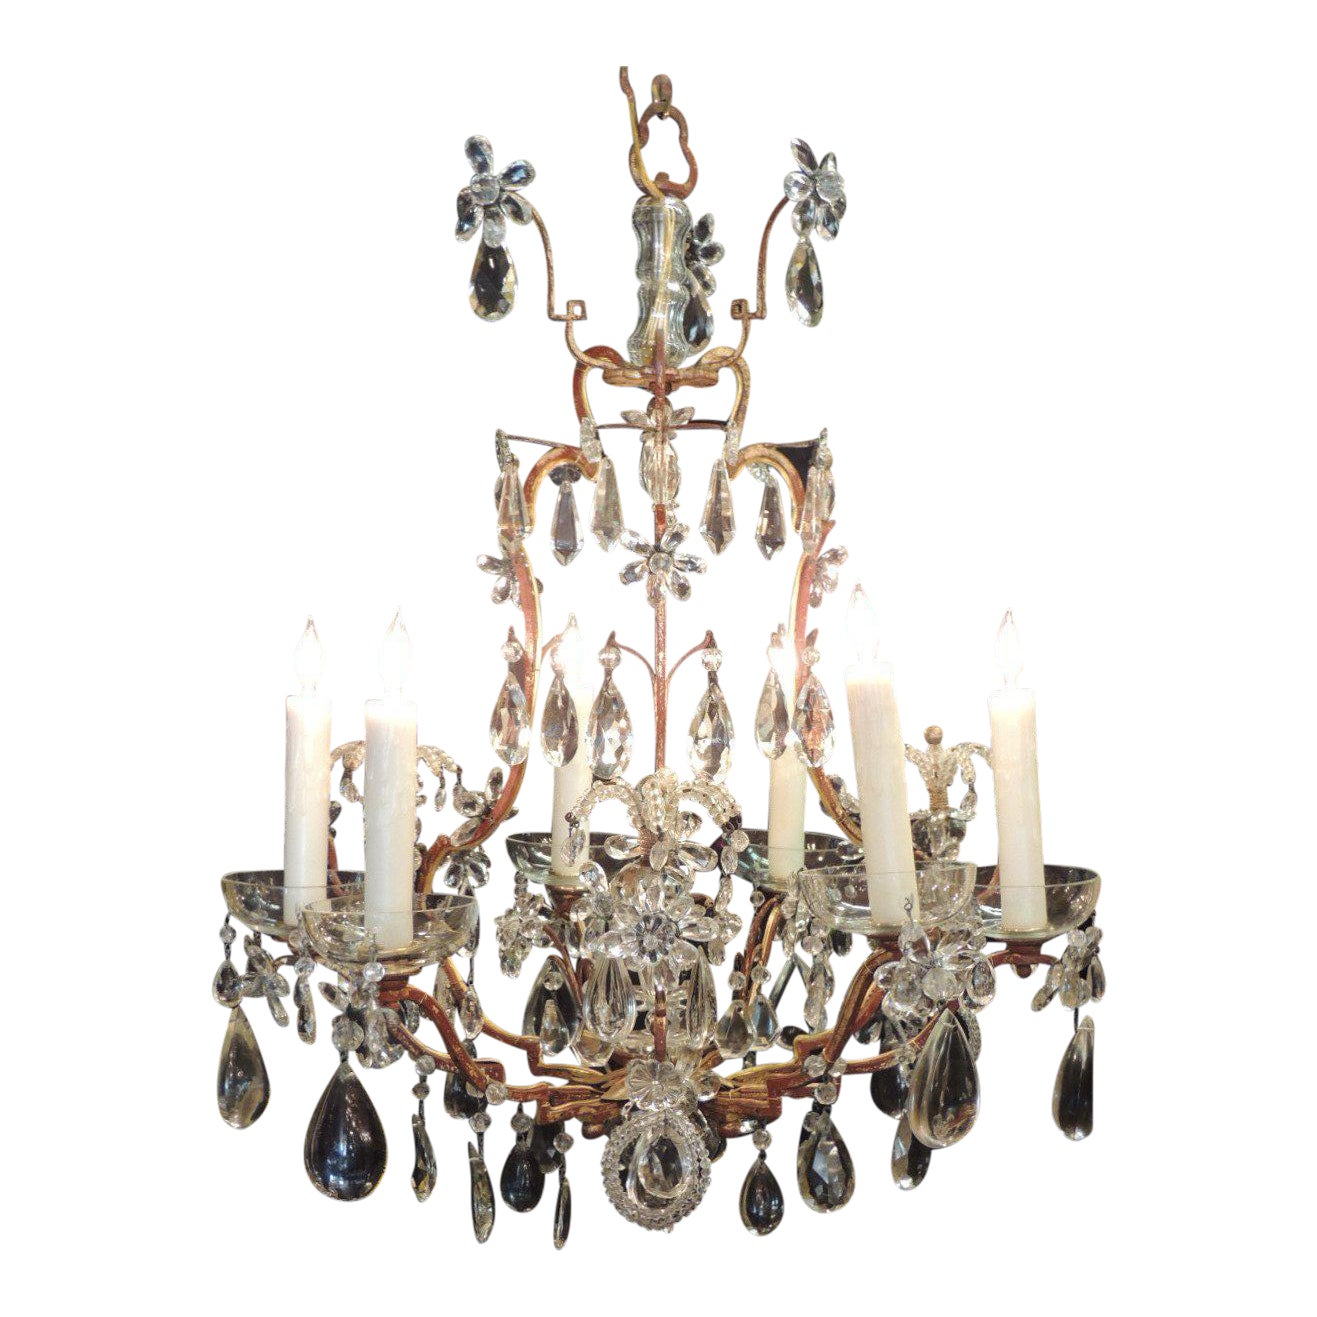 bronze chandeliers light ceiling lights foucault crystal and iron orb s all chandelier dark